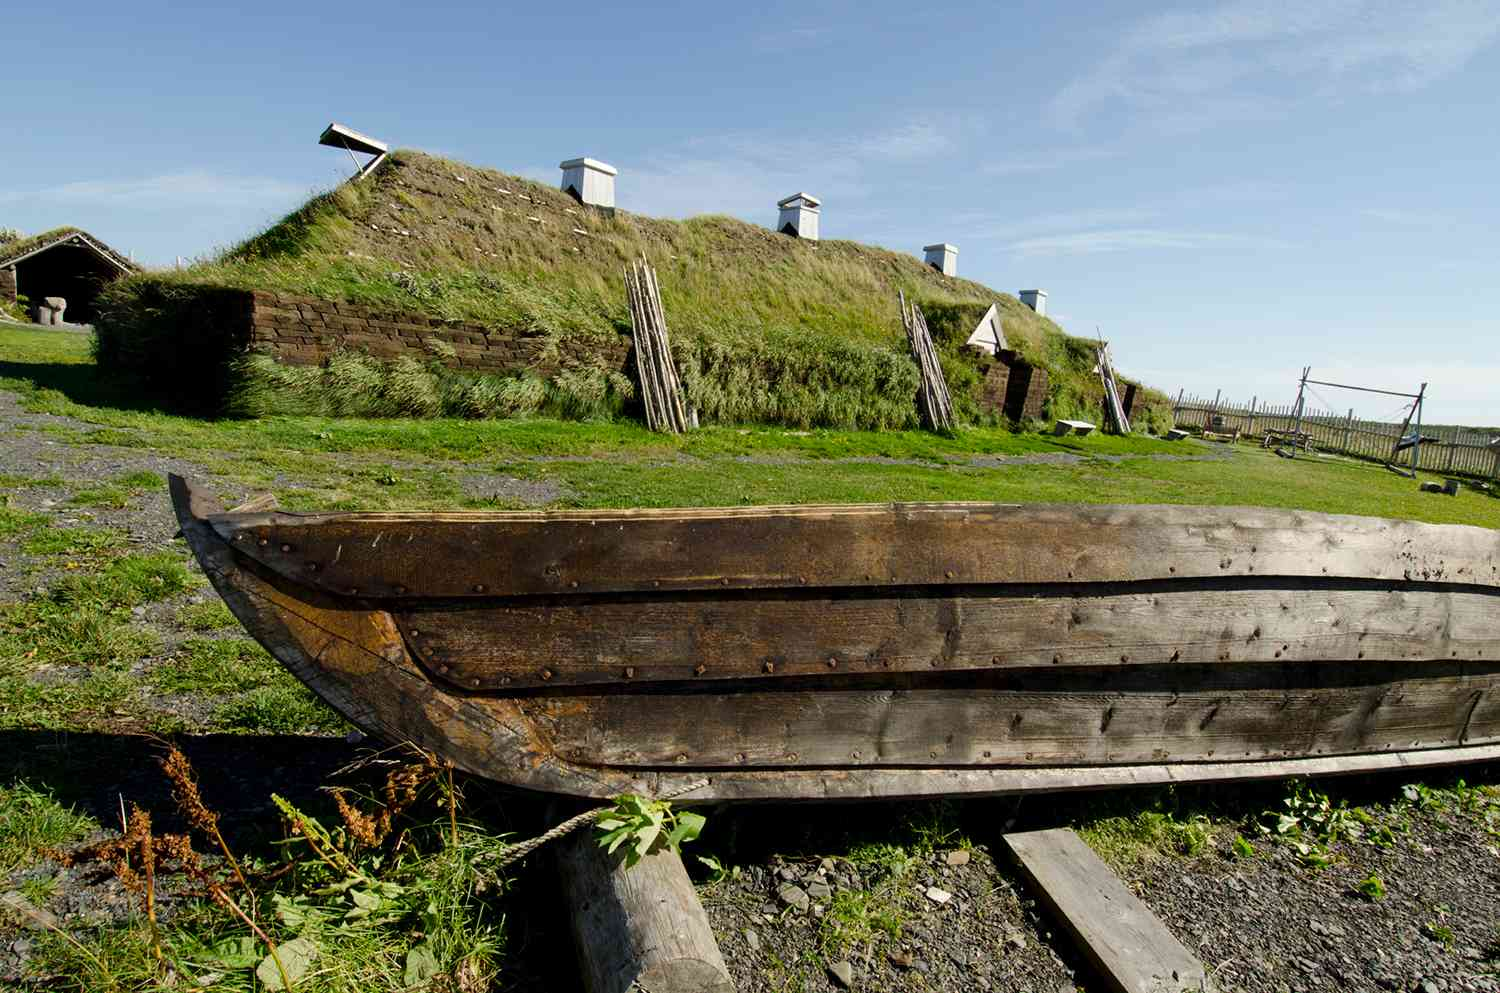 Viking style boat in front of reconstructed sod Norse long house